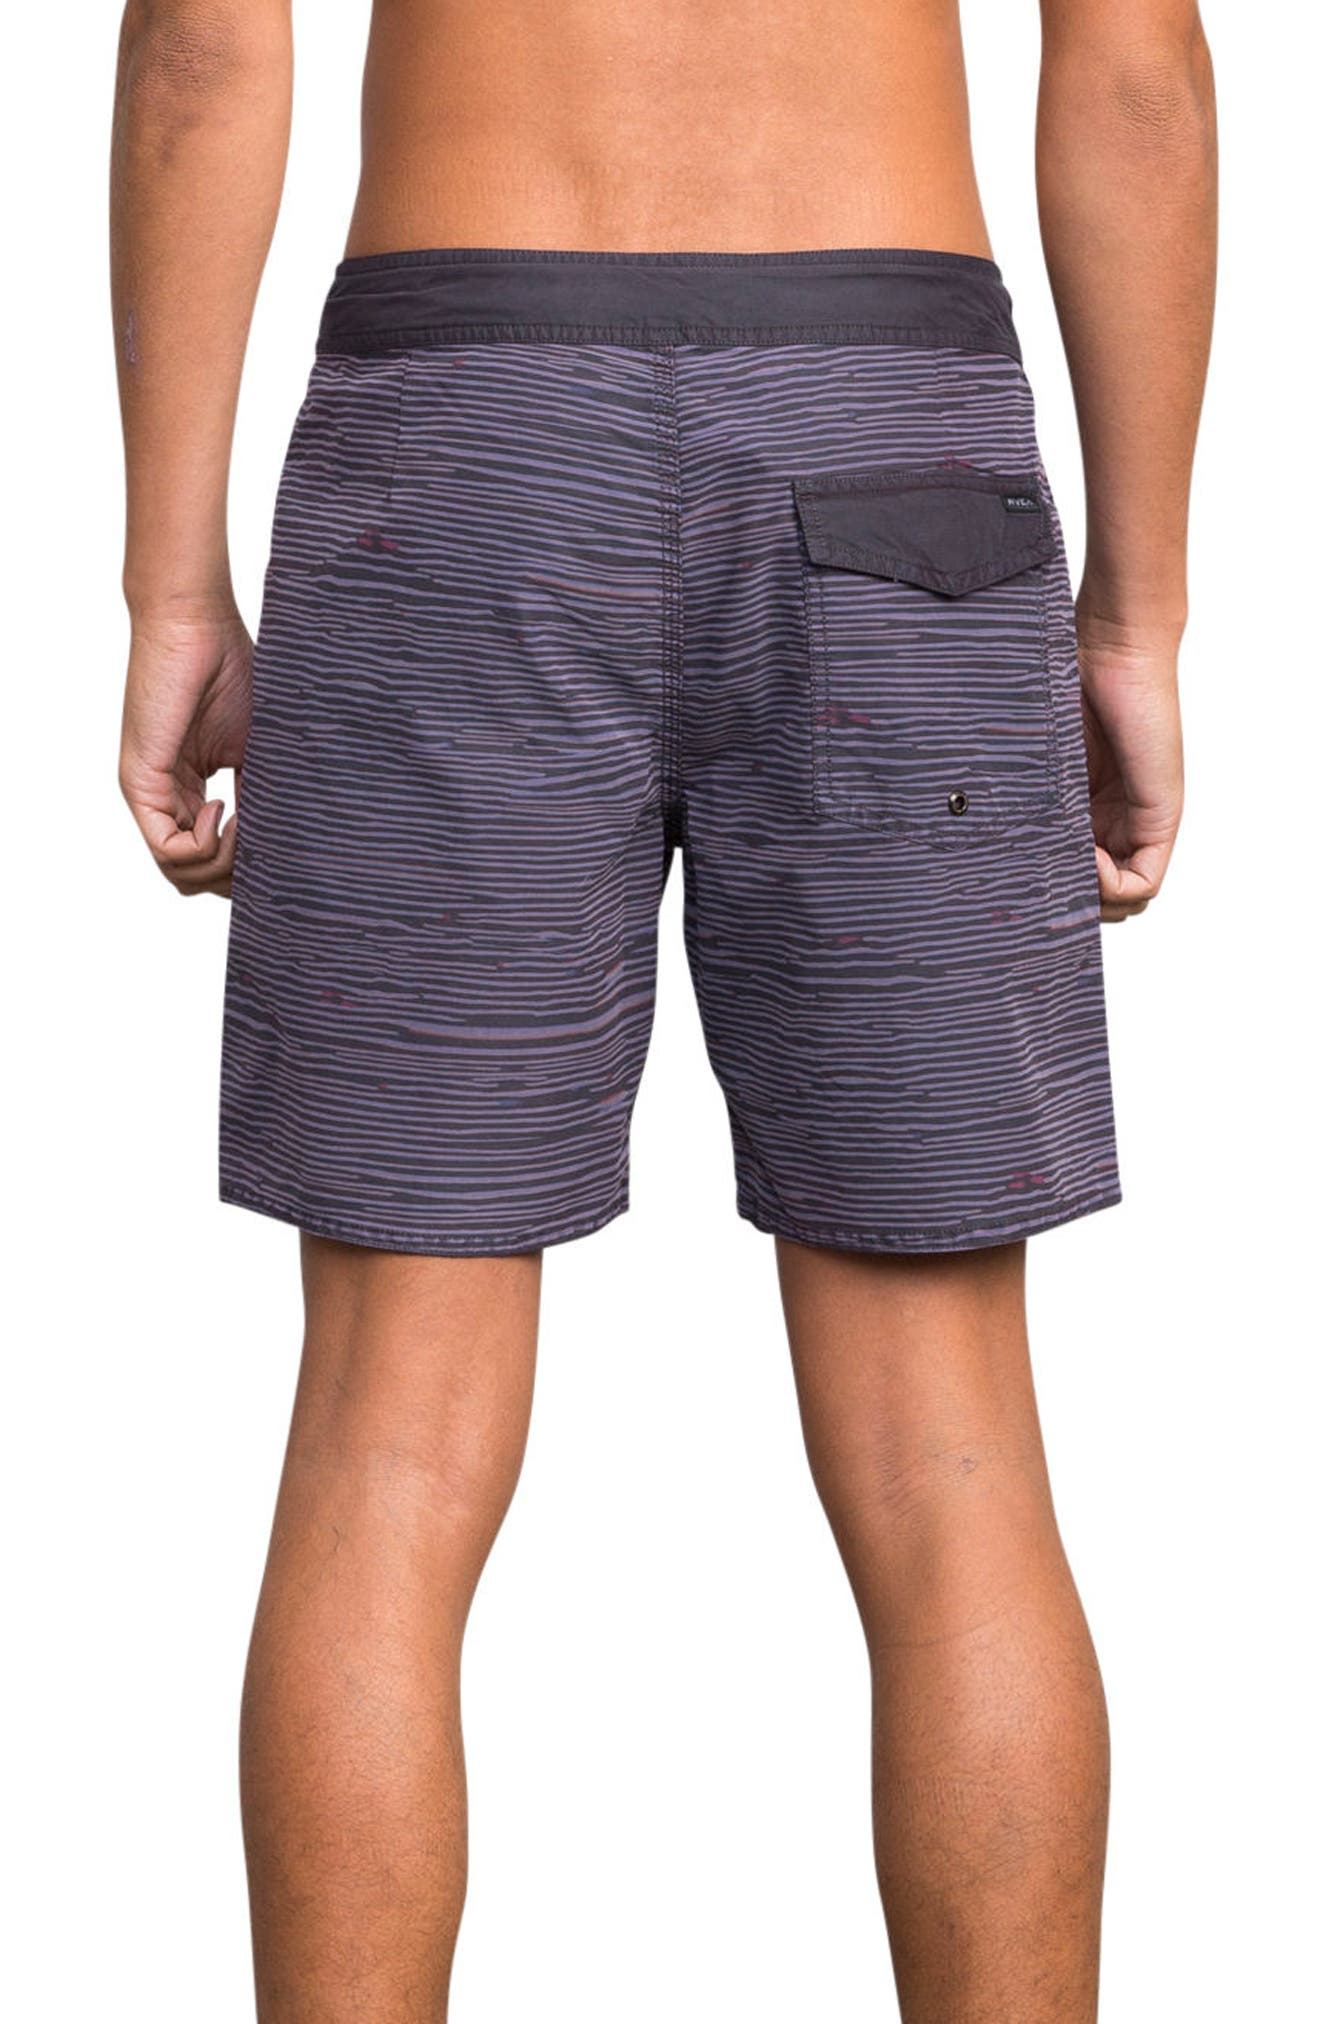 Flinch Board Shorts,                             Alternate thumbnail 2, color,                             Dark Purple